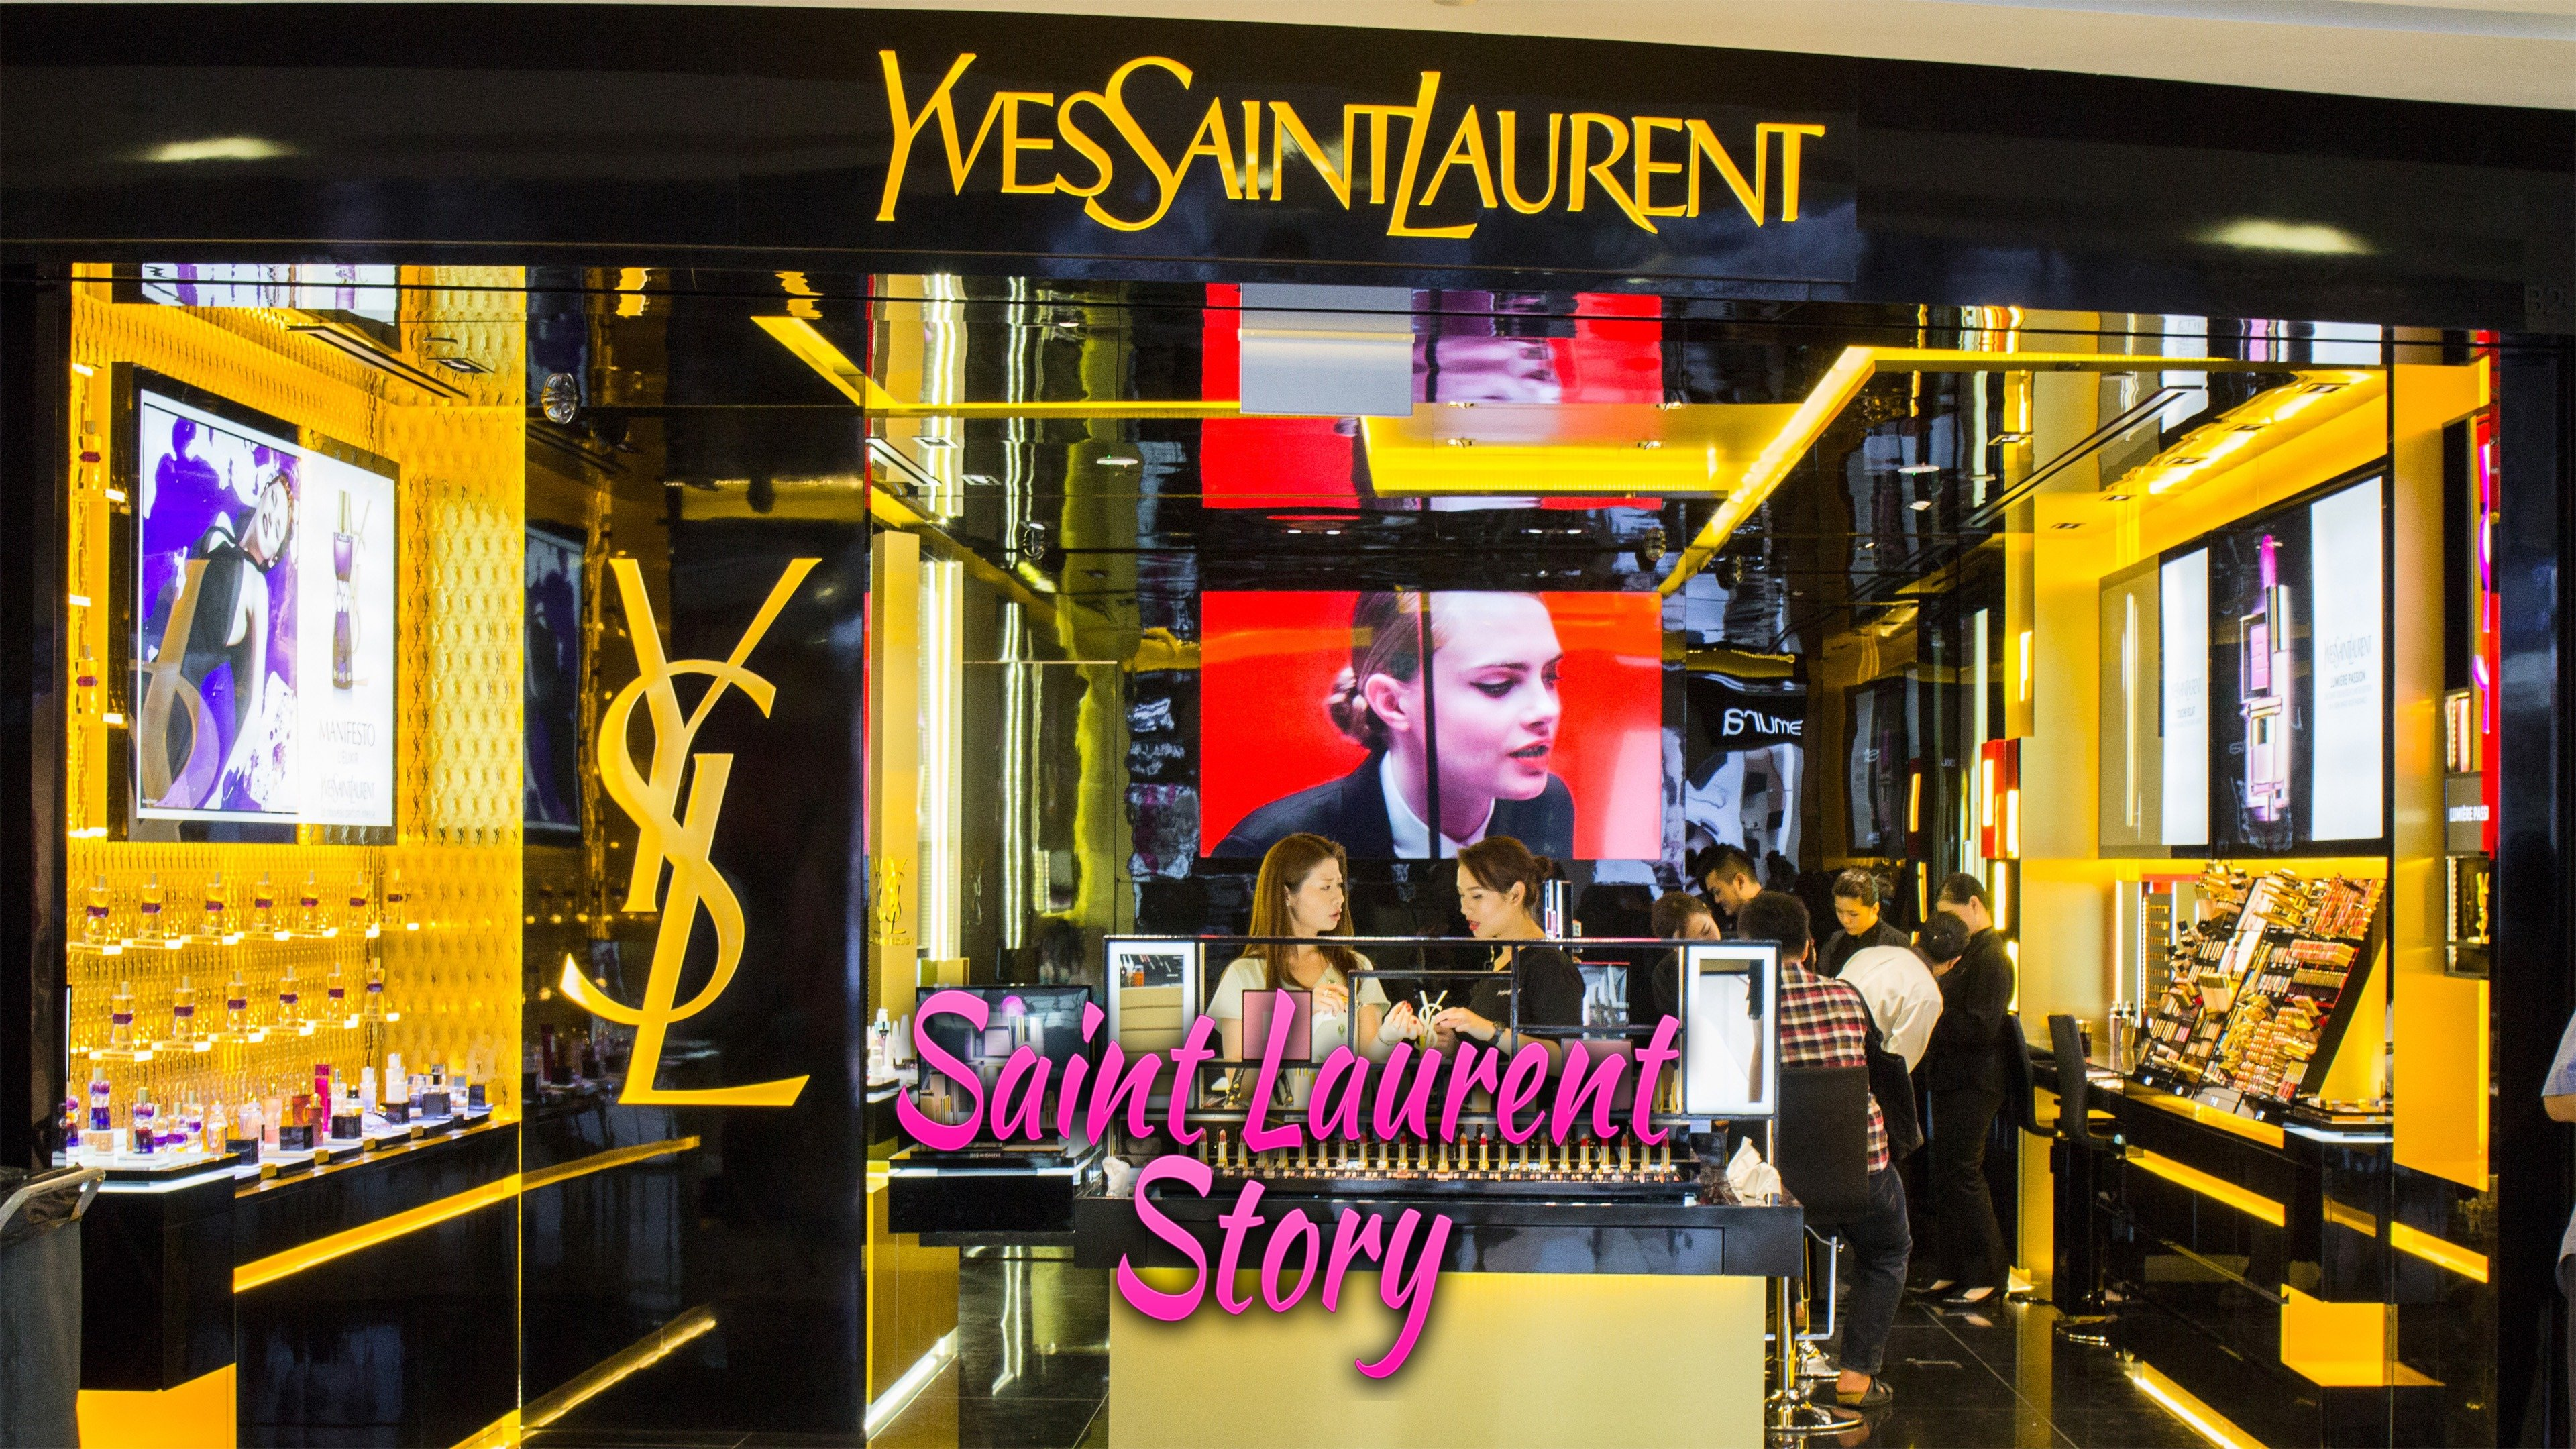 Saint Laurent Story